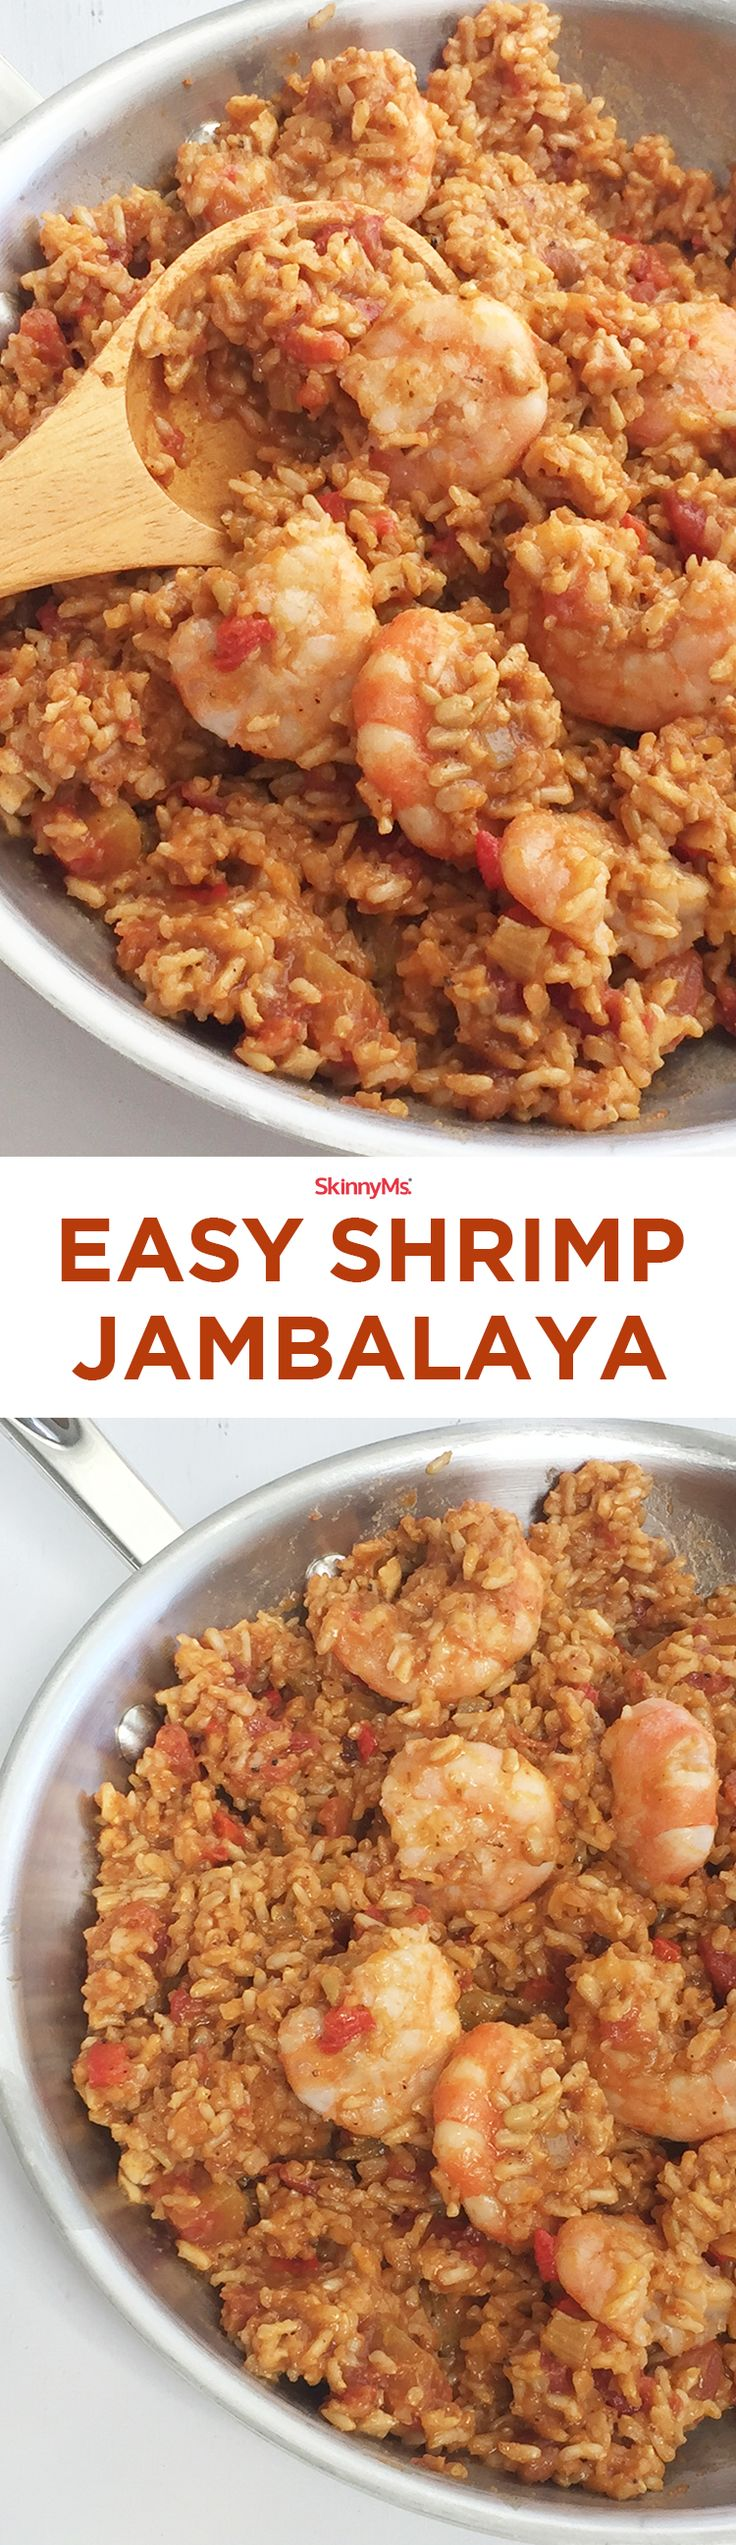 This Easy Shrimp Jambalaya dish can be served in any season for any meal and tastes great for any occasion!